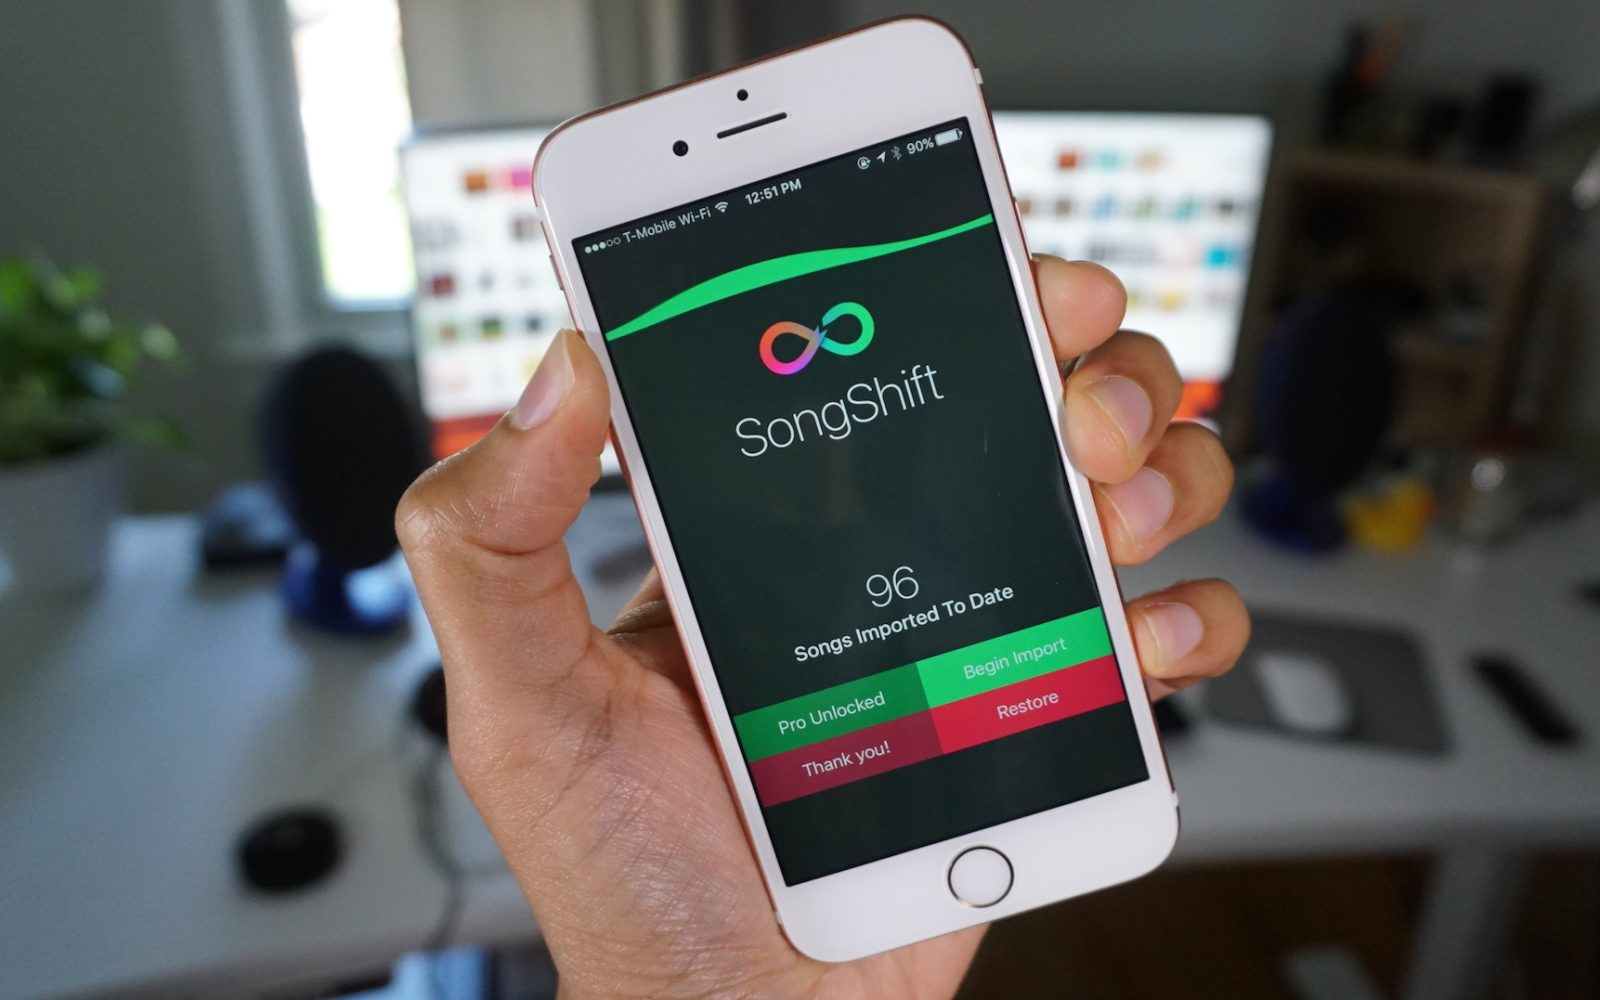 SongShift lets you import Spotify playlists into Apple Music